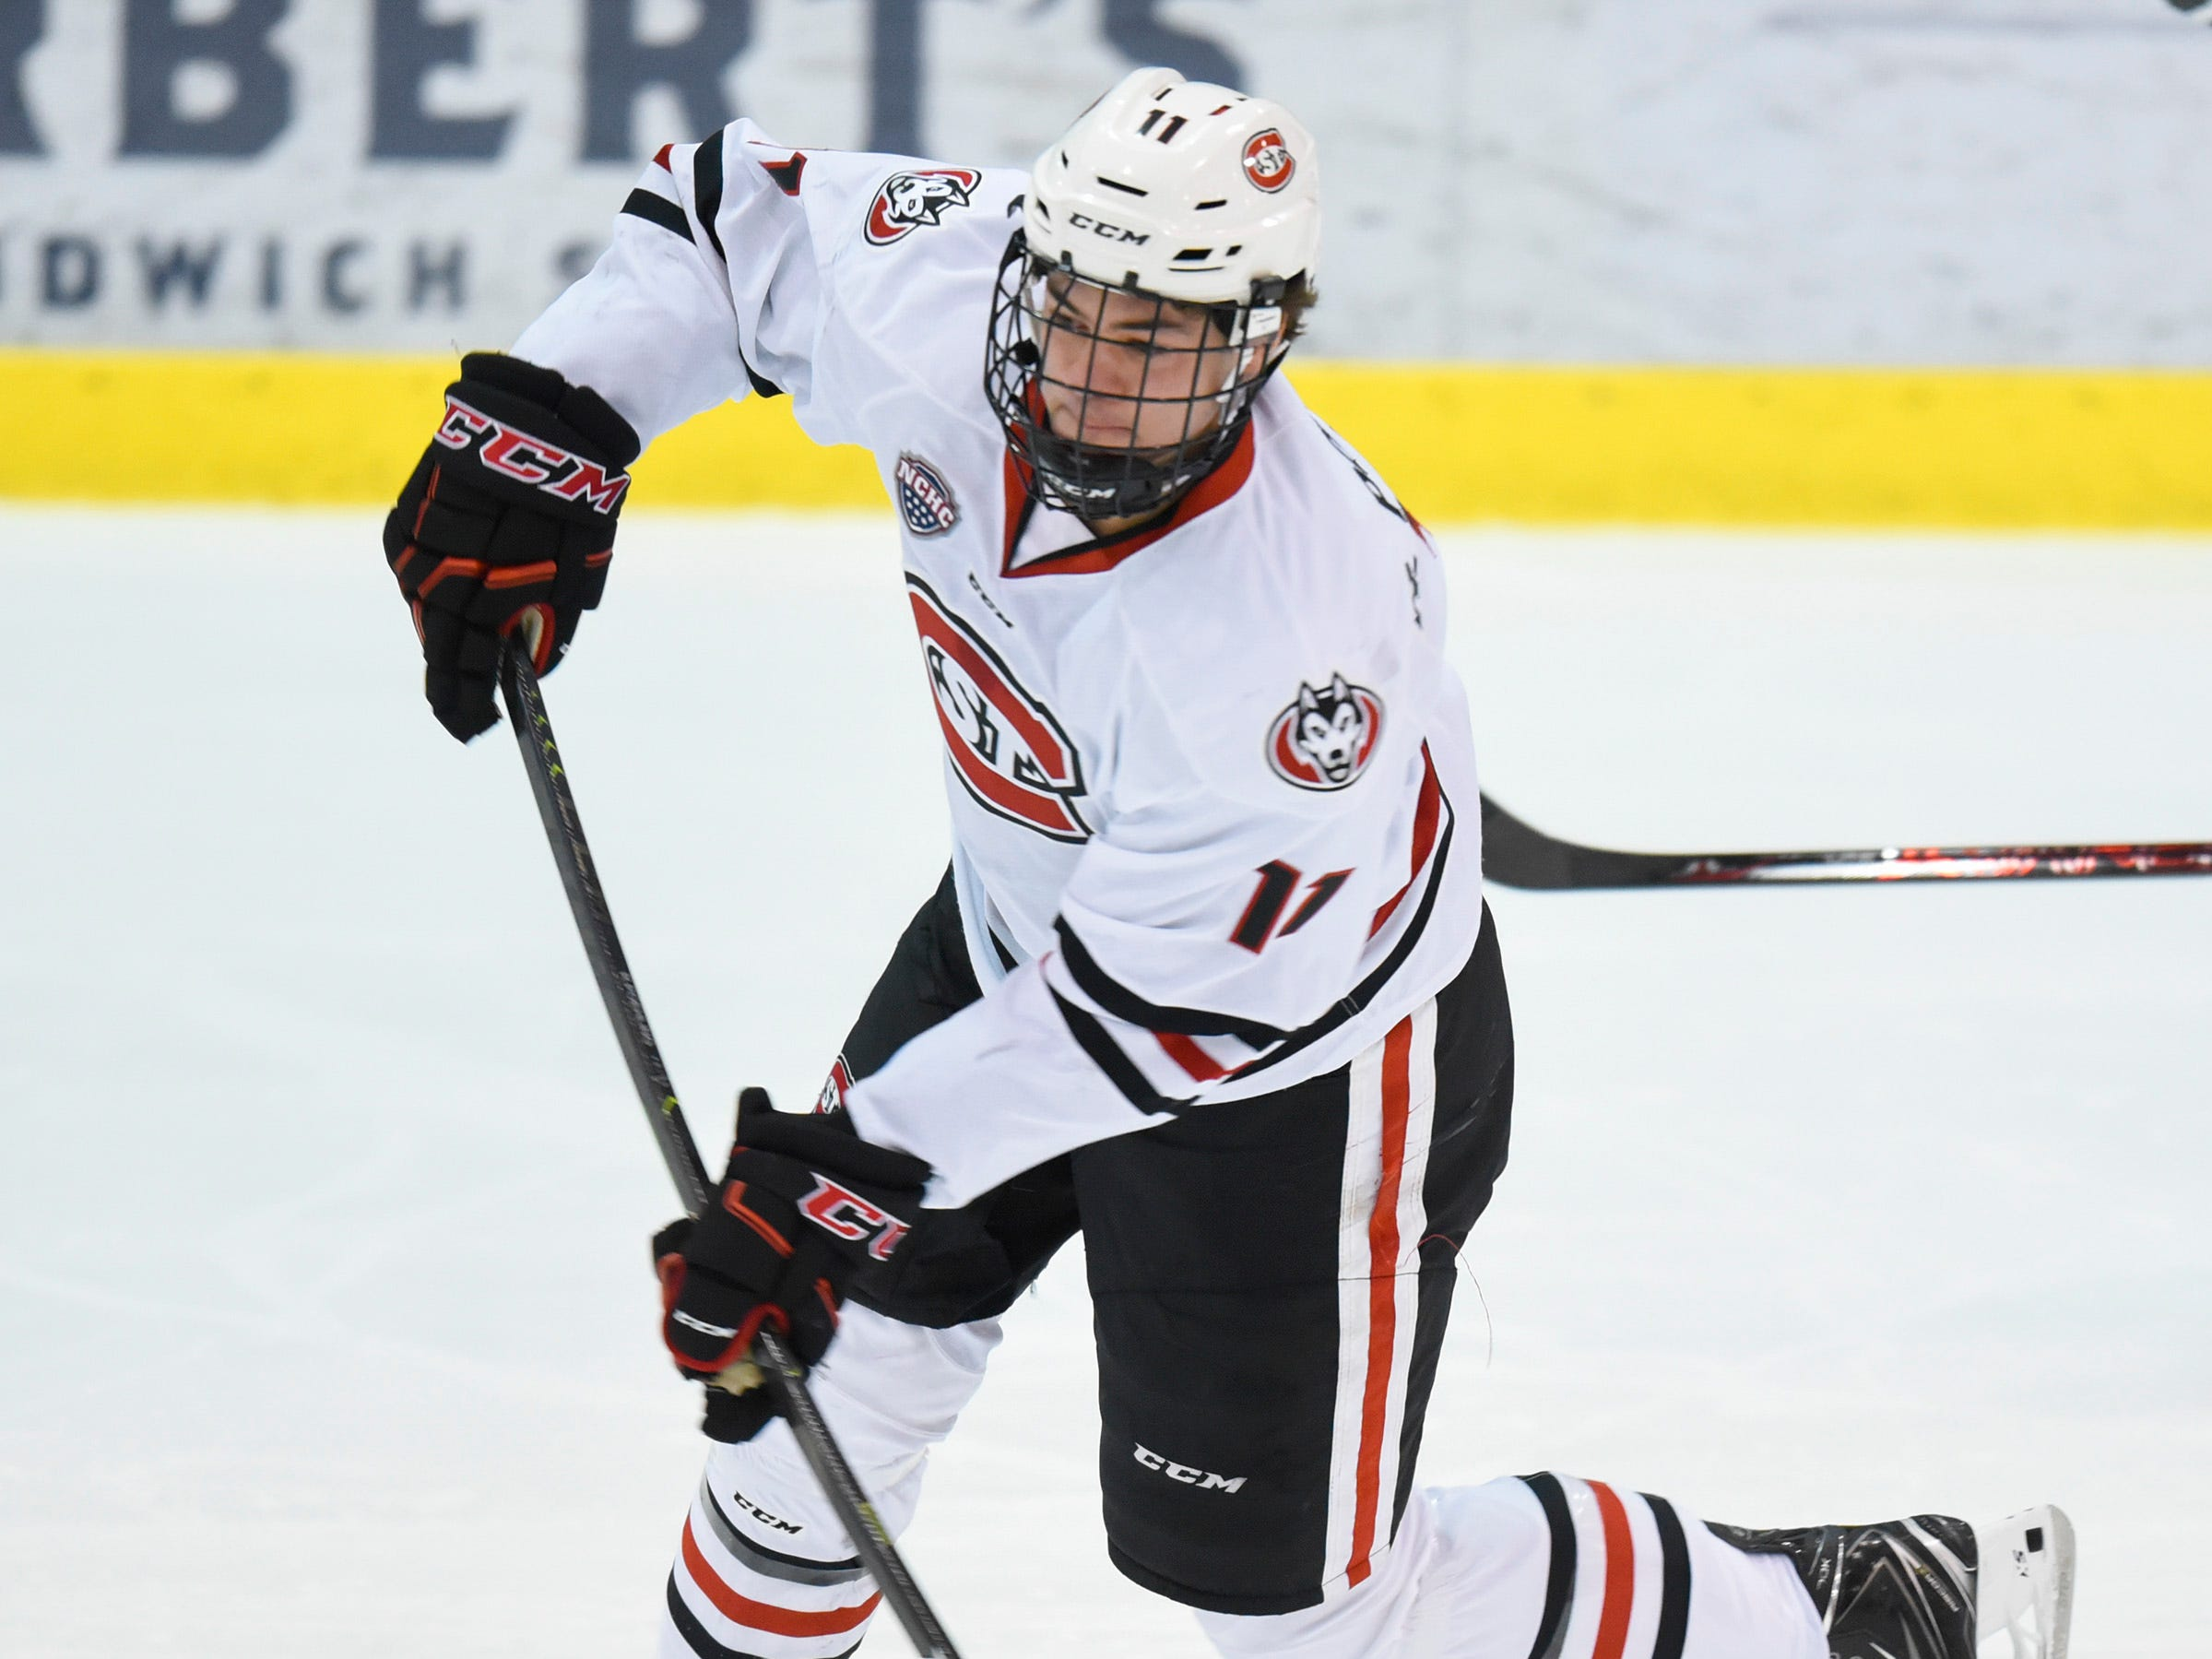 St. Cloud State's Ryan Poehling takes a shot at the goal against Nebraska-Omaha during the first period Friday, Dec. 7, at the Herb Brooks National Hockey Center.